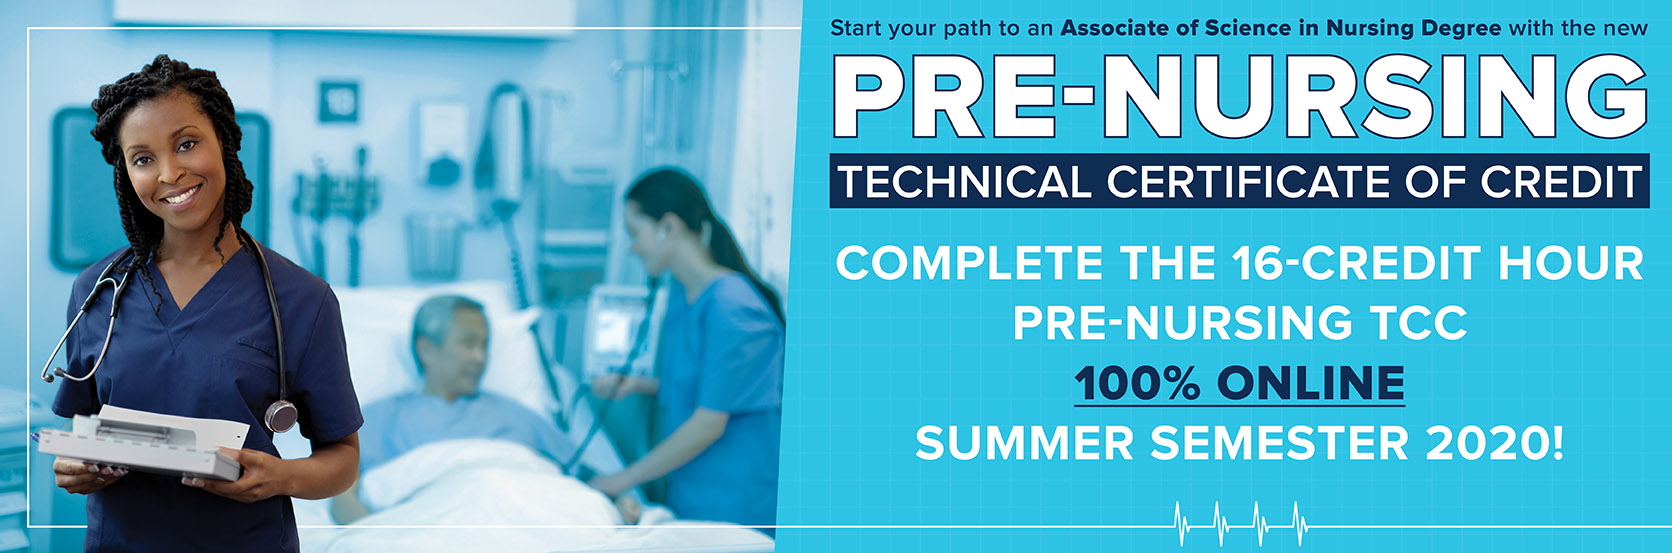 Complete the new Pre-Nursing program 100% online this summer!